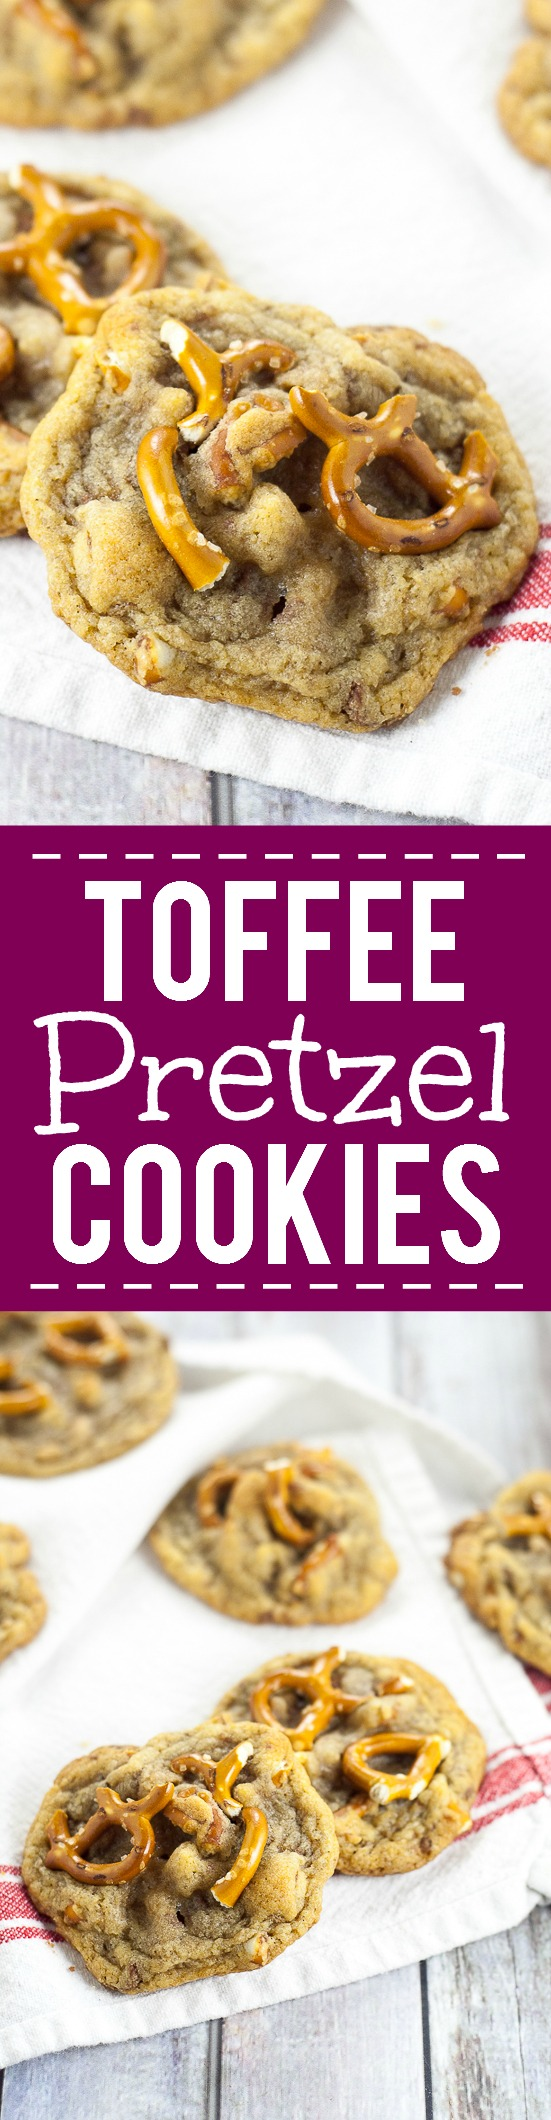 Toffee Pretzel Cookies Recipe - Chewy, gooey Toffee Pretzel Cookies recipe with crunchy and sweet toffee bits and salty pretzel pieces for a salty-sweet flavor all inside a classic chewy cookie. Love that these have some yummy Fall flavors but would also be perfect for a Christmas cookies recipe exchange.